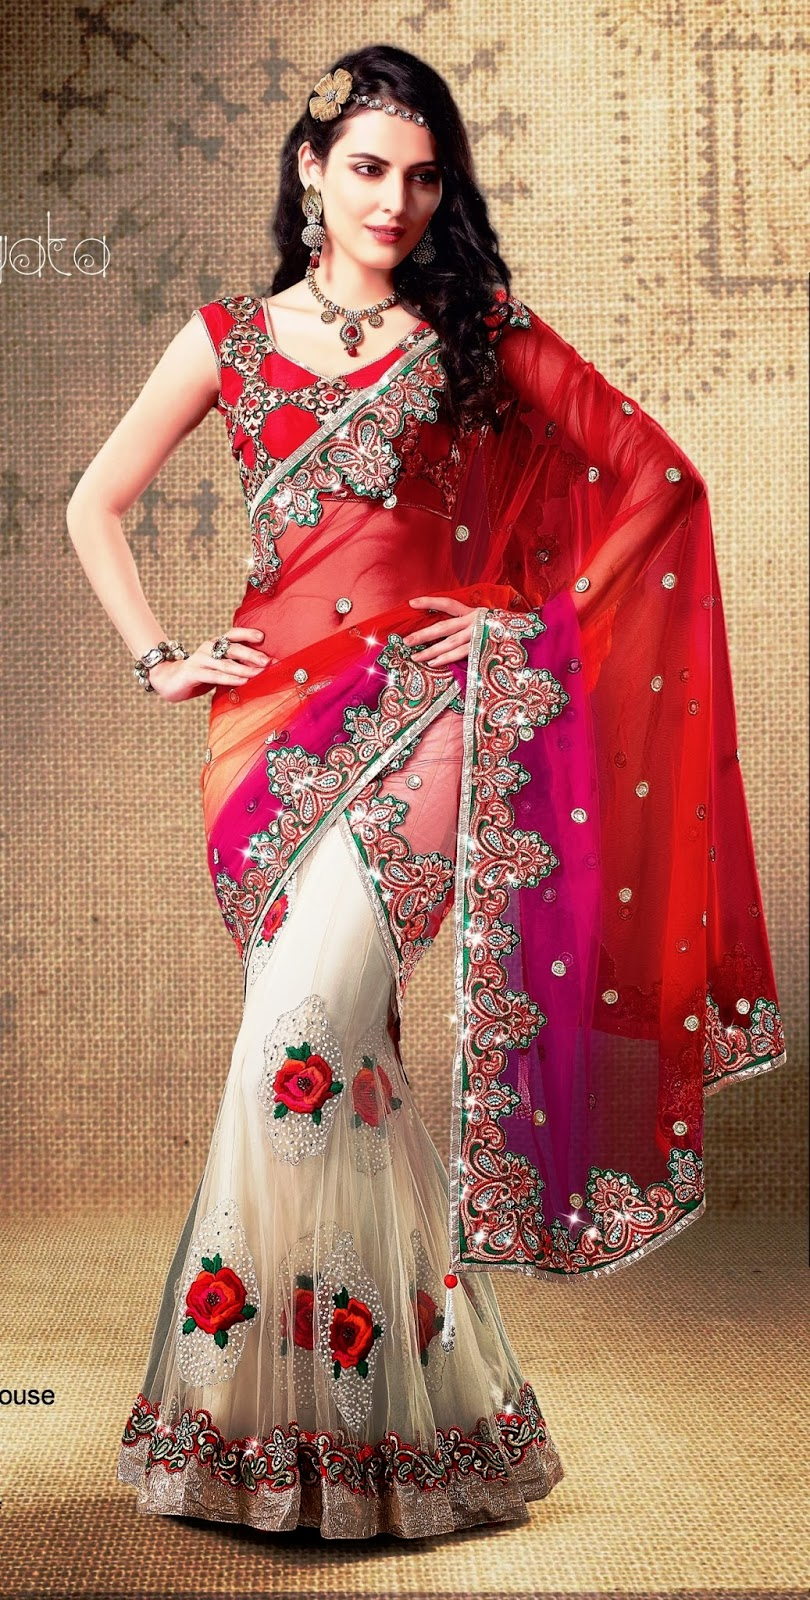 Makeup Review U0026 Beauty Blog  5 Reasons To Have Designer Sarees In Your Wardrobe